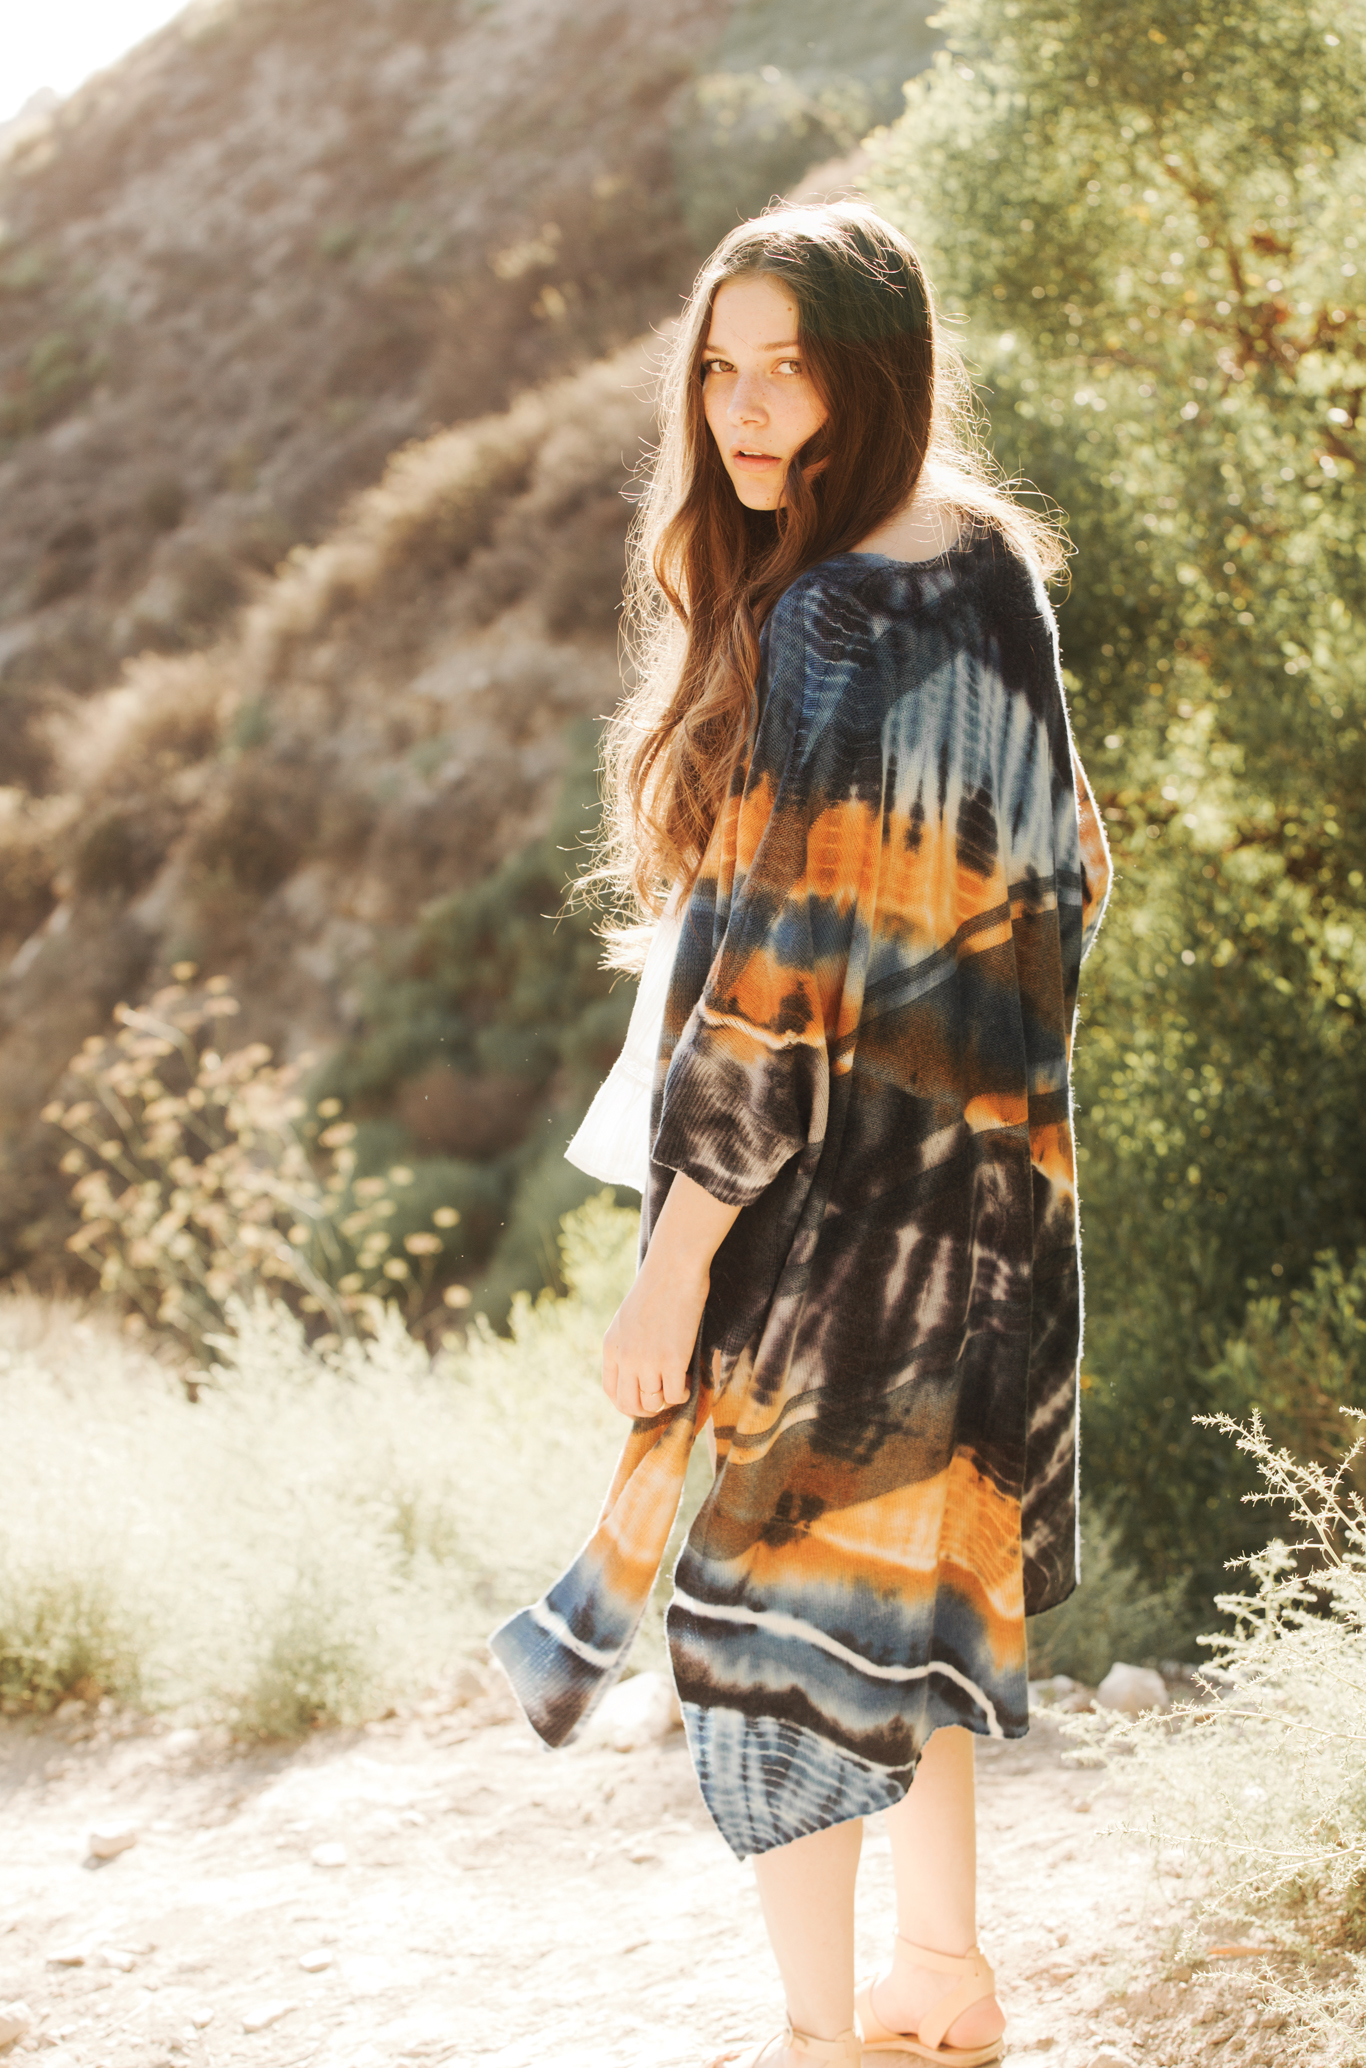 Spring 2016 Trend: The New Bohemians